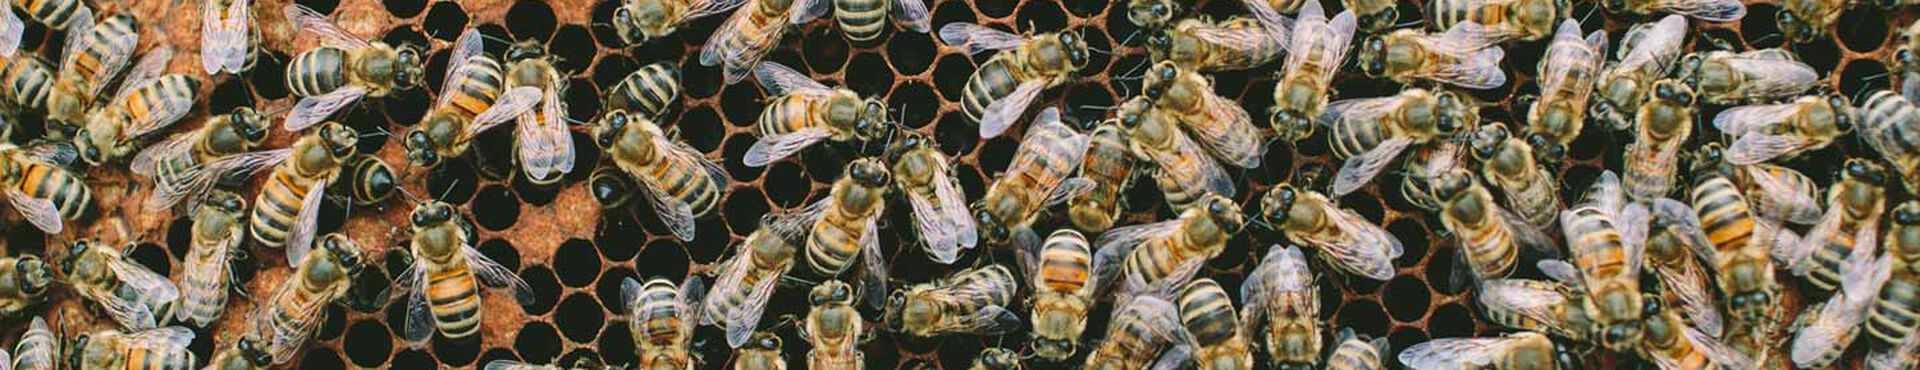 Banner - The Buzz About World Bee Day